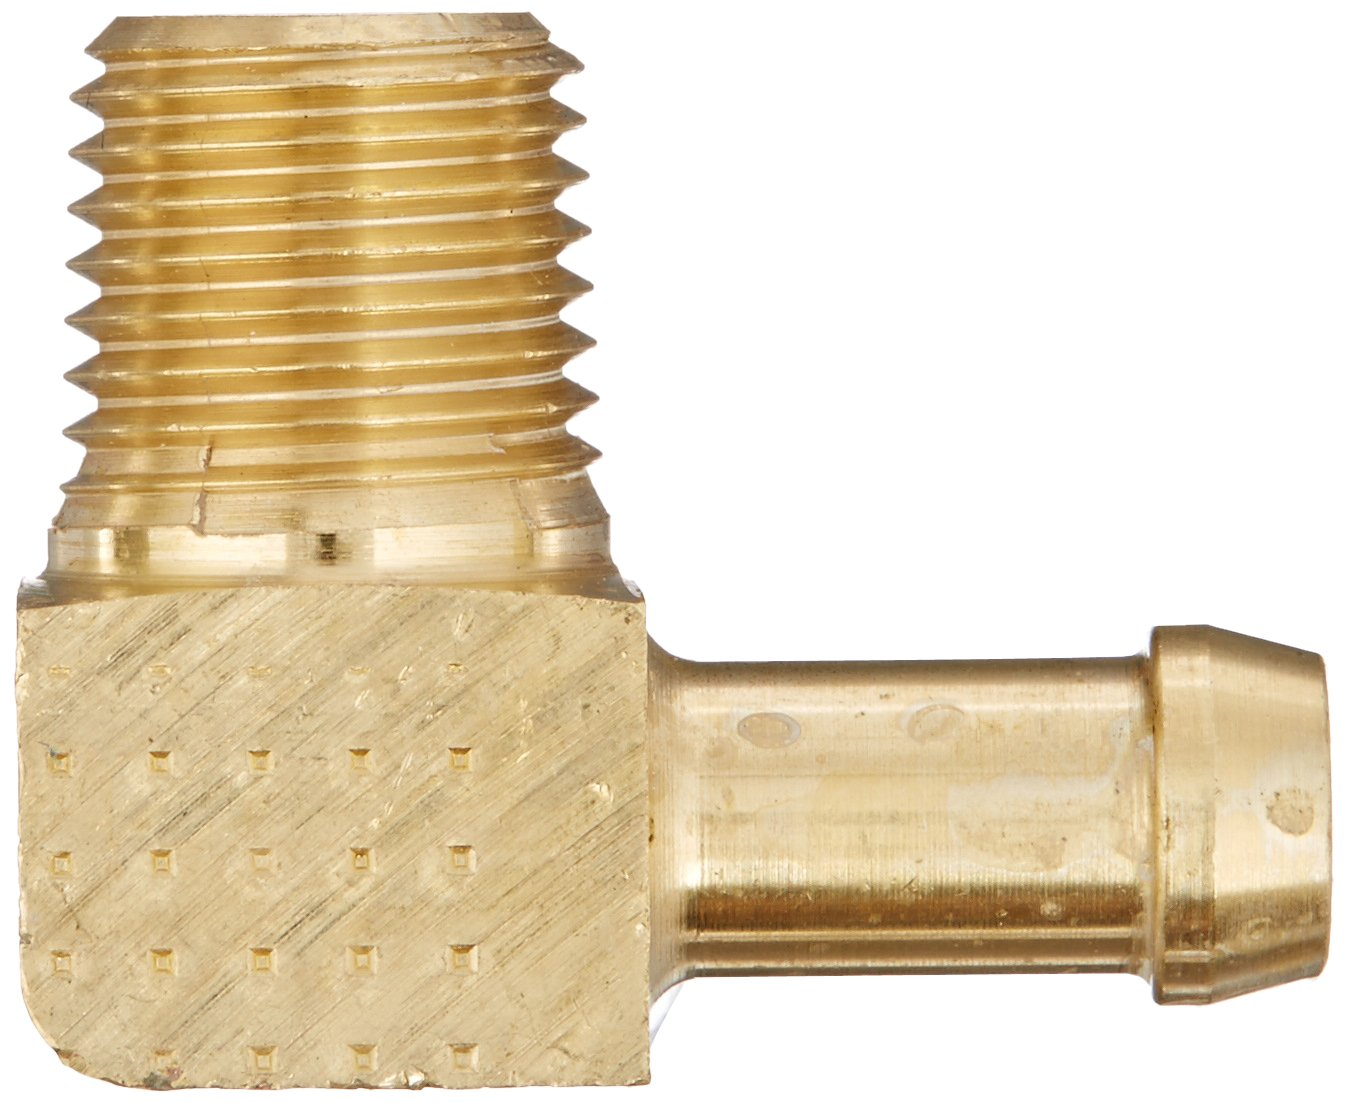 CA360 Brass 1//4 Pipe Size 5//16 Hose ID 1//4 Pipe Size 5//16 Hose ID 90 Degree EATON Weatherhead 05705B-C04 Male Pipe Rigid Elbow Fitting